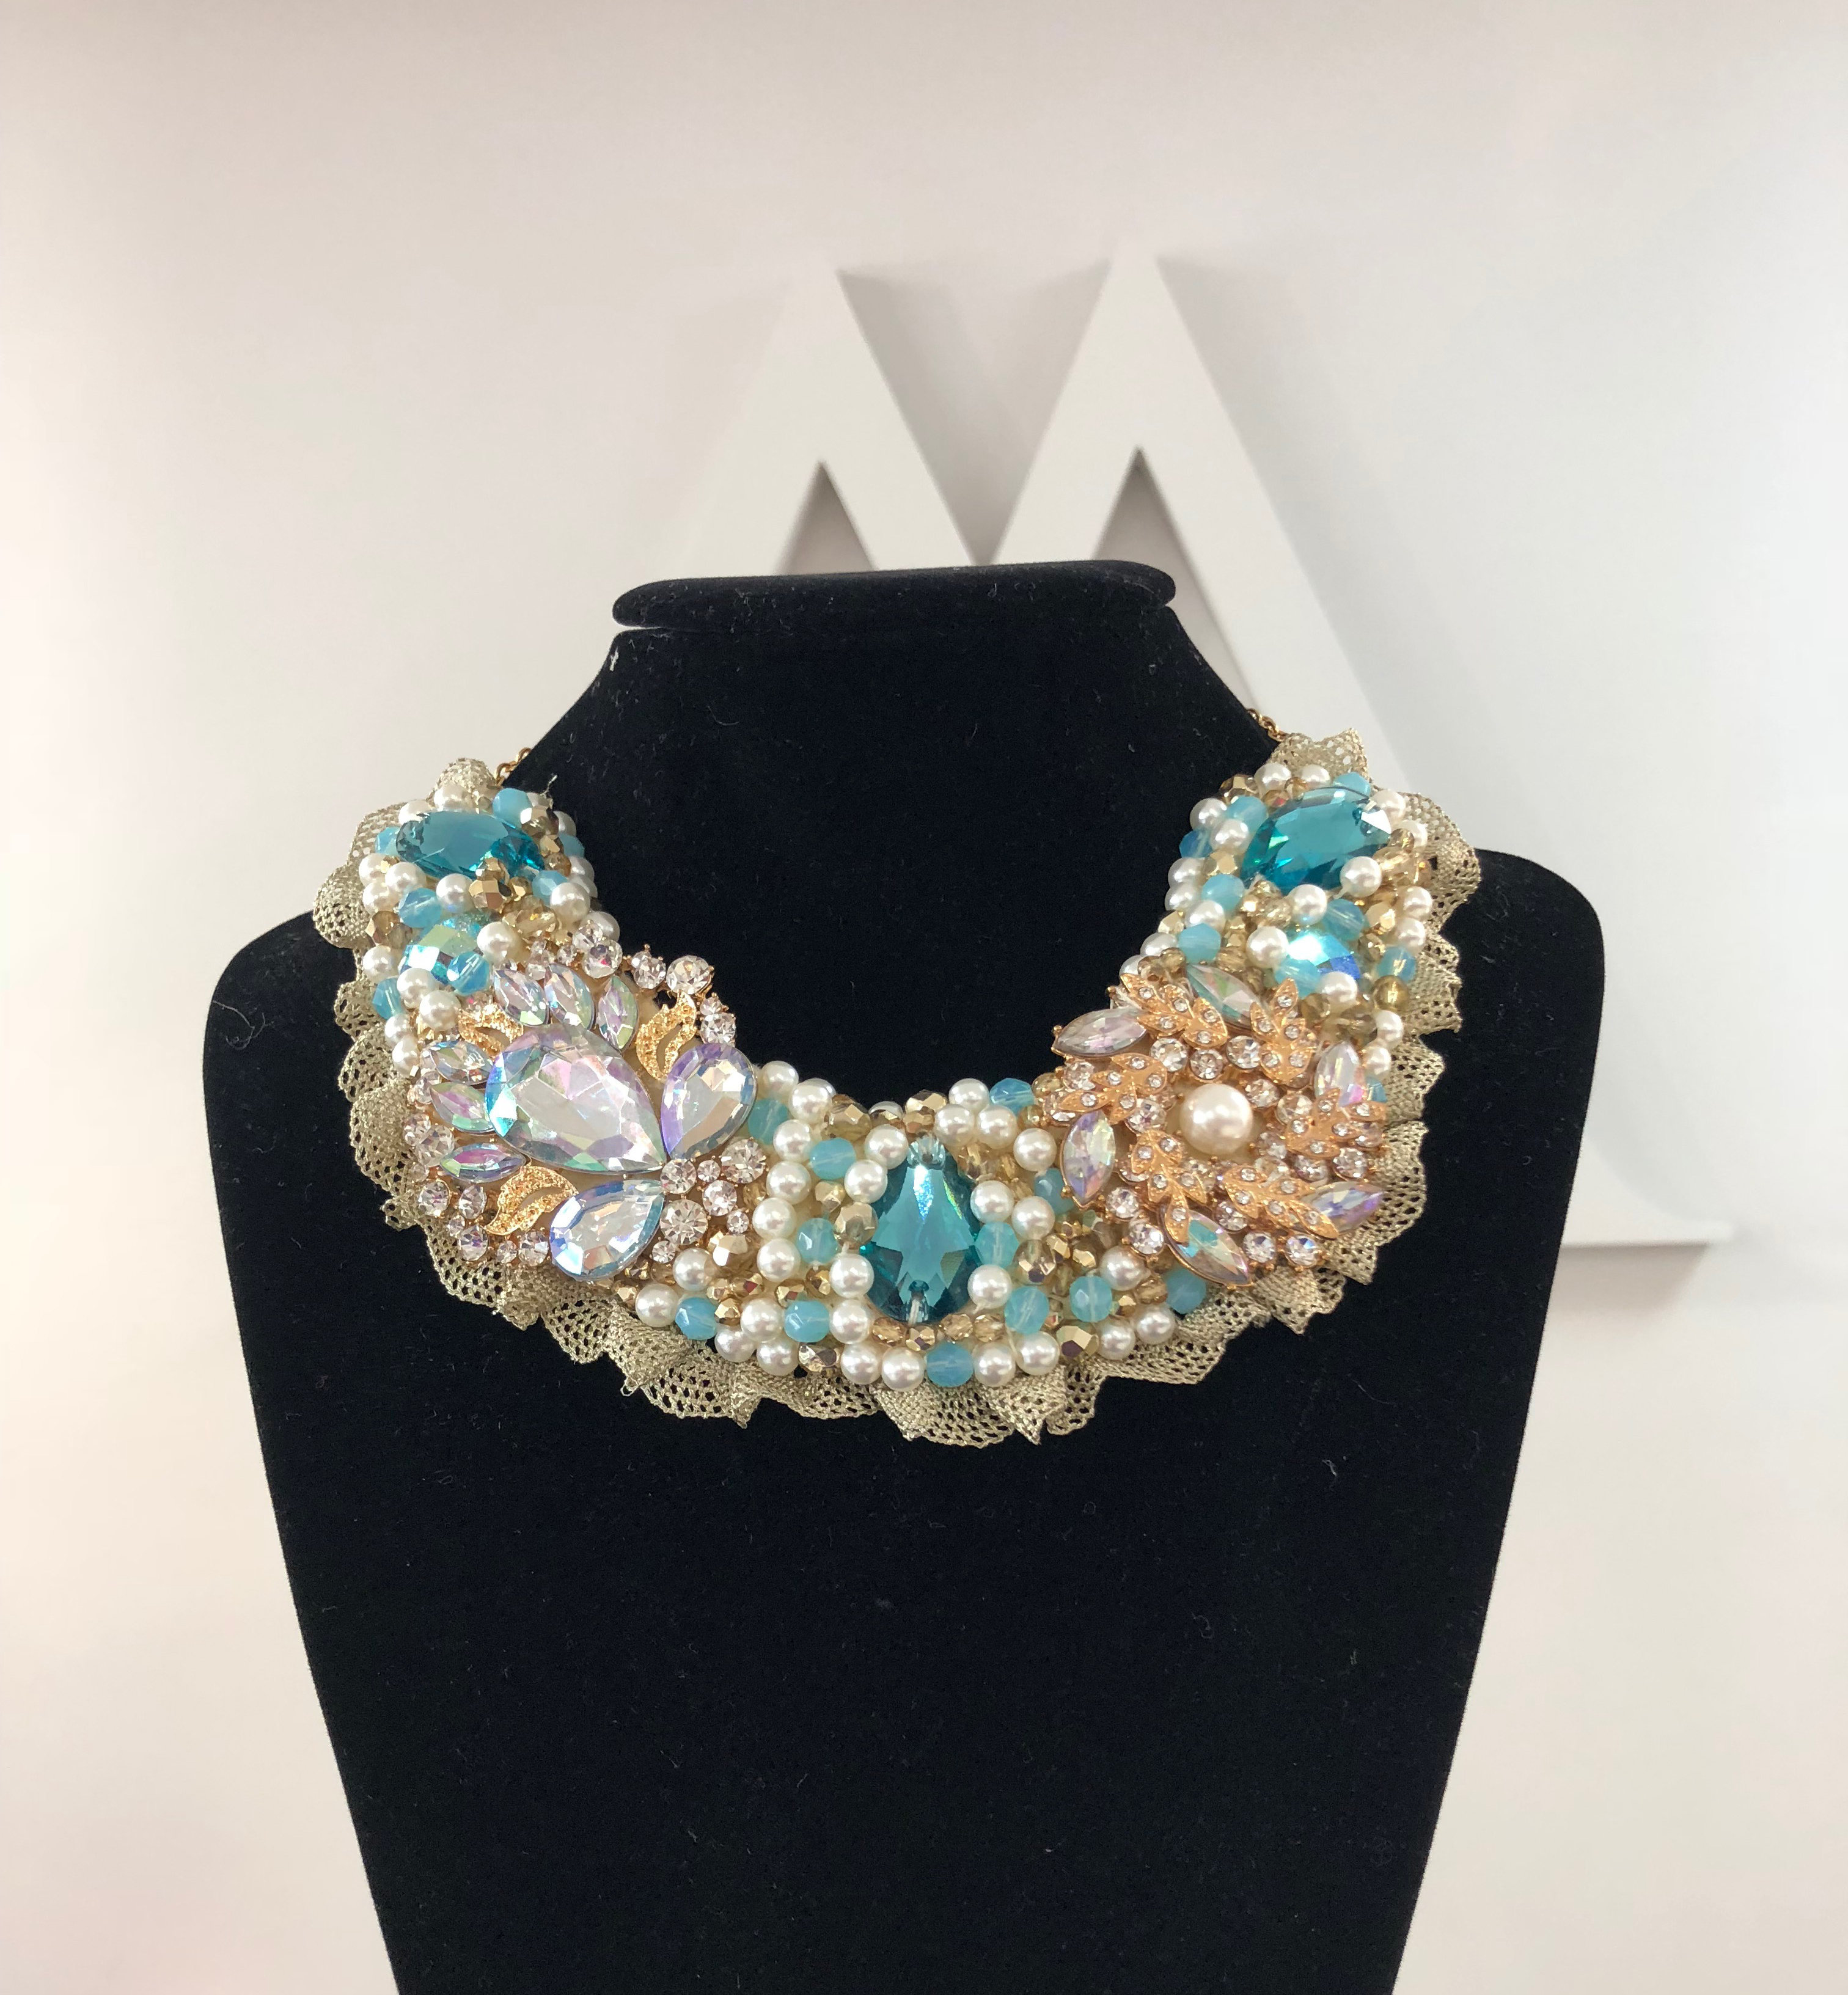 Aisling Maher Collar pearl/turquoise/bling 5TJD3JCNG5Z1T